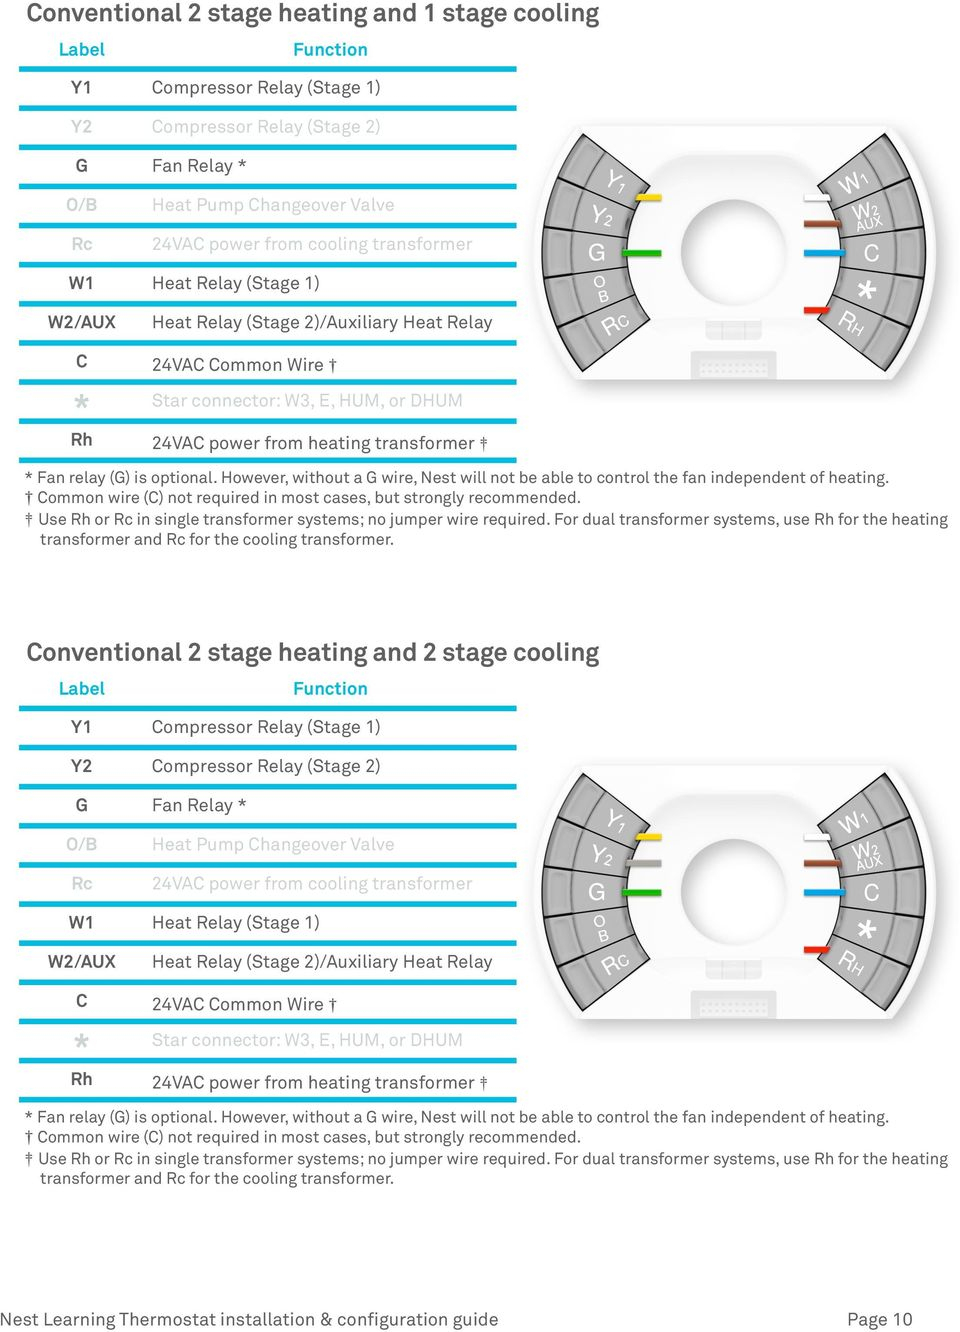 Nest Learning Thermostat Pro Installation & Configuration Guide - Pdf - Lennox Nest Wiring Diagram